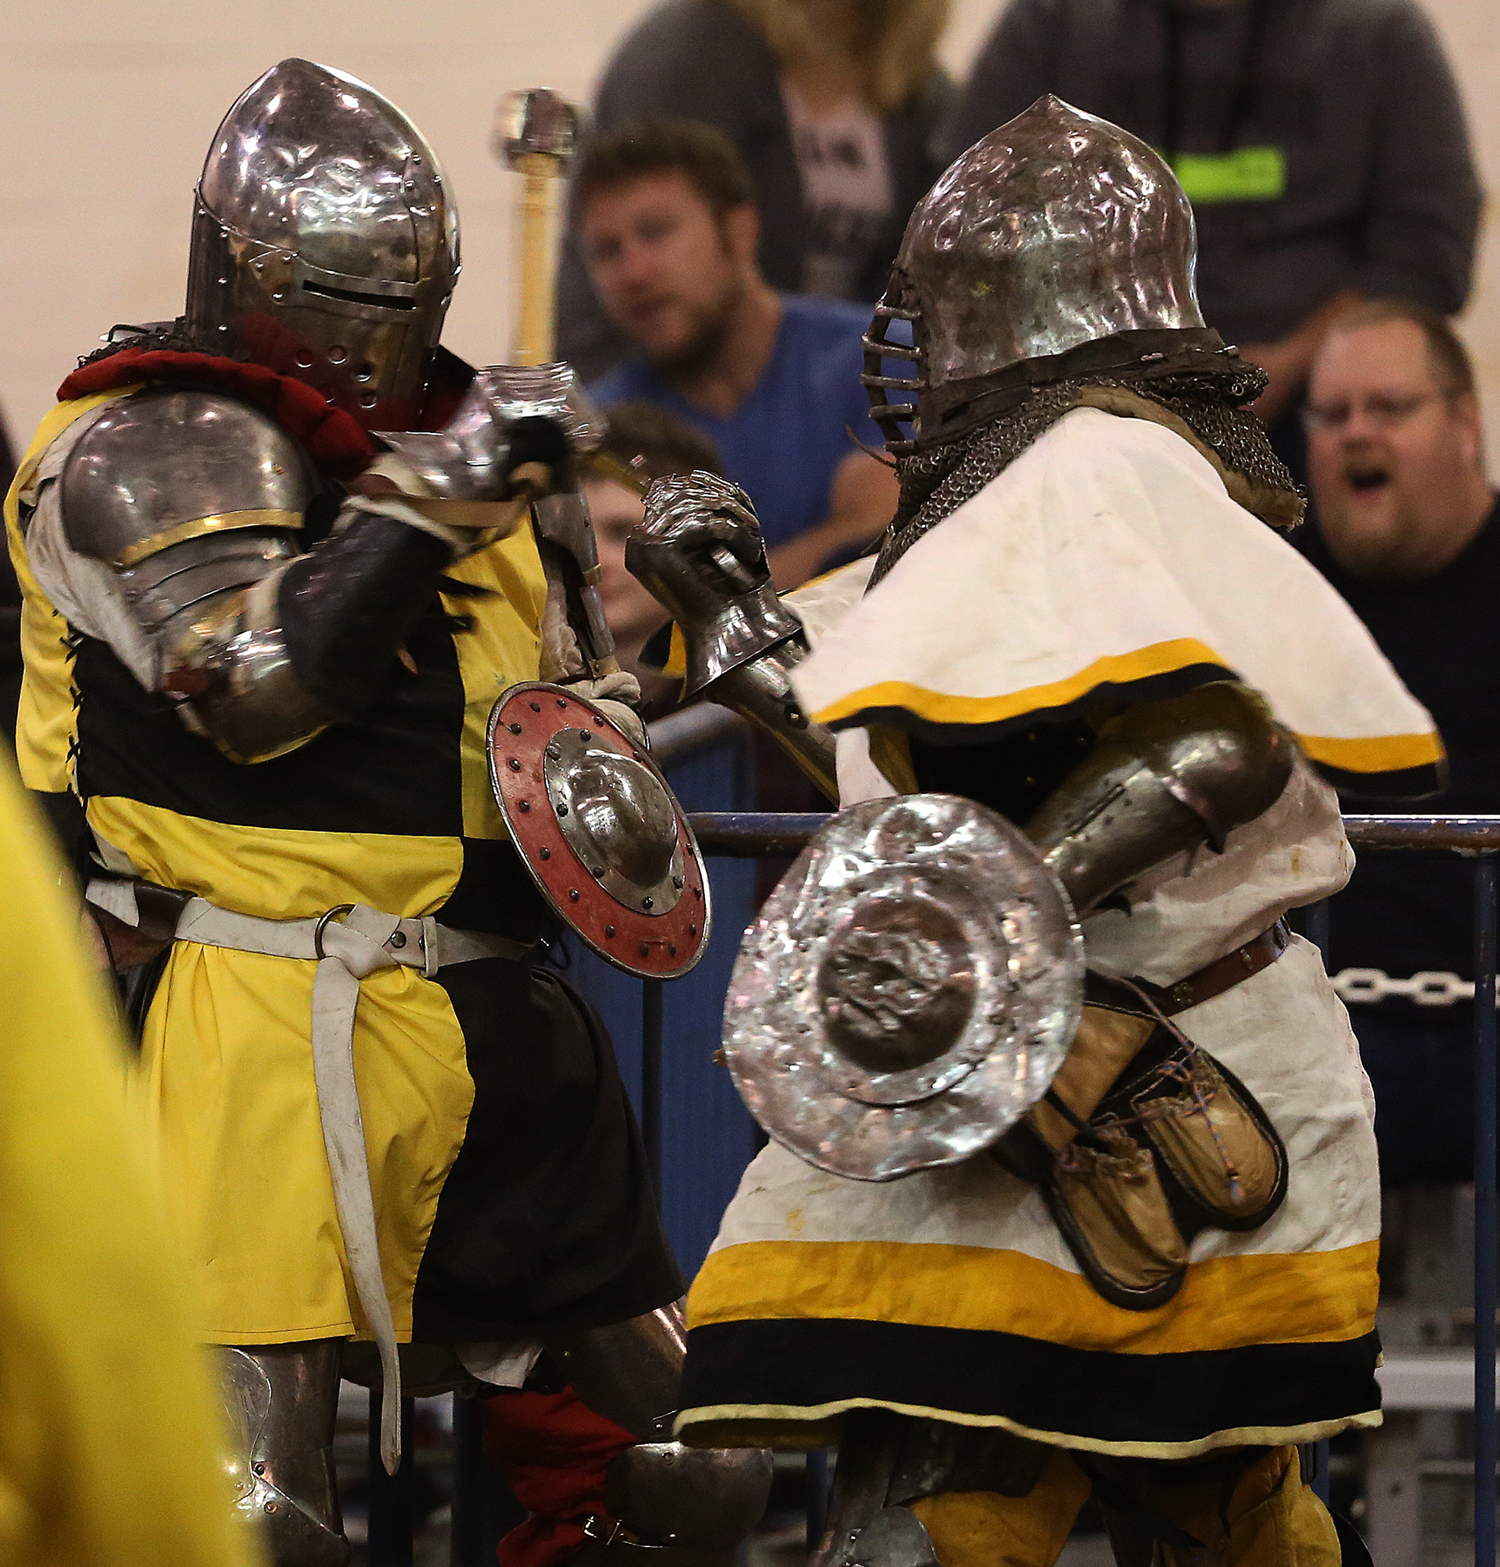 Fighters hold small steel shields while going head to head in battle Saturday. The Medieval battle competition Battle of the Nations International Tournament of Chivalry took place at the Livestock Center on the Illinois State Fairgrounds in Springfield on Saturday, Oct. 18, 2014. Armored sword fighters competed in the full contact sport individually and as teams from around the world for medals. David Spencer/The State Journal-Register